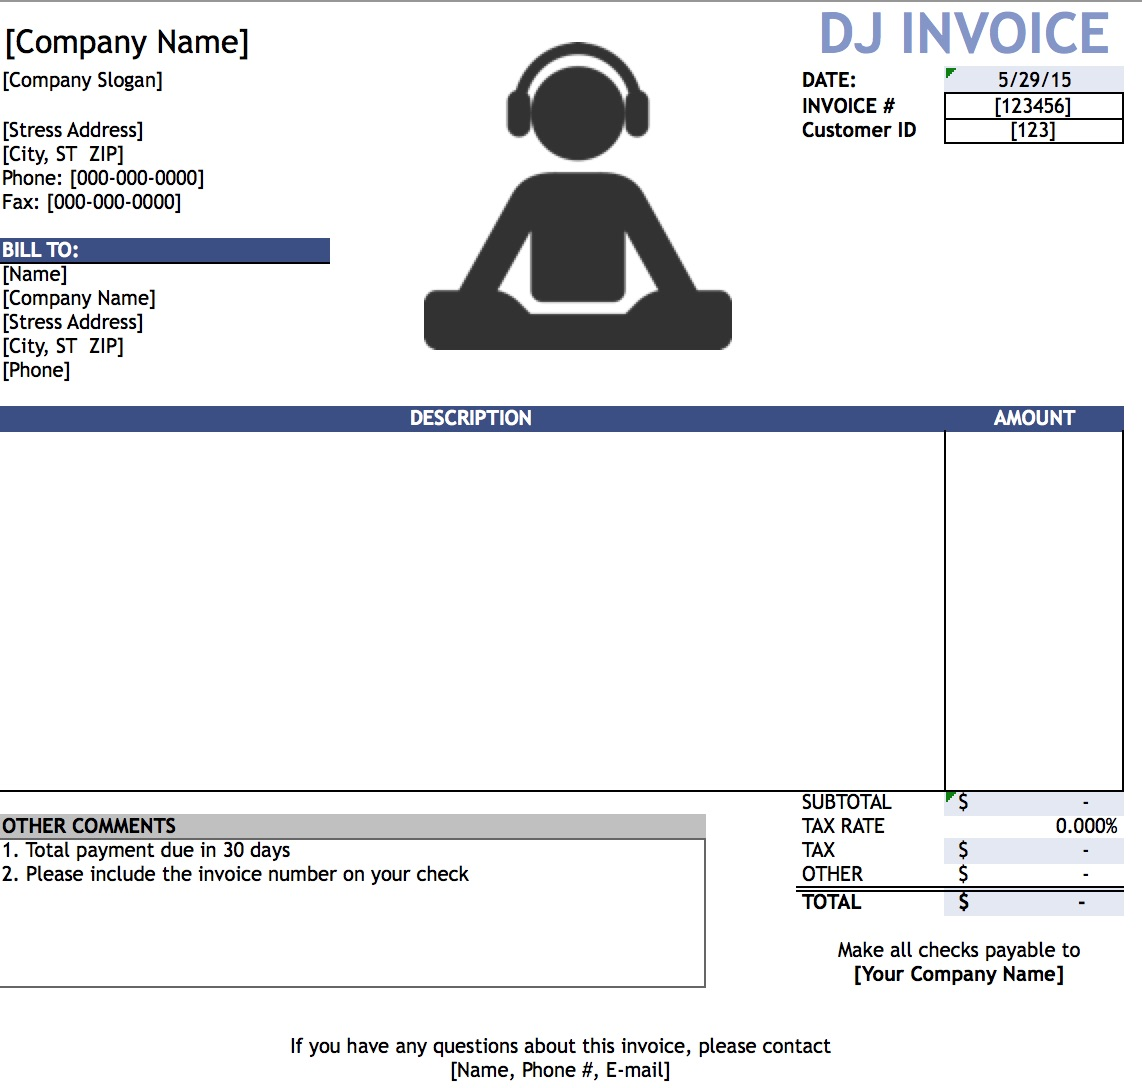 Free DJ Disc Jockey Invoice Template Excel PDF Word Doc - Free online invoice generator for service business